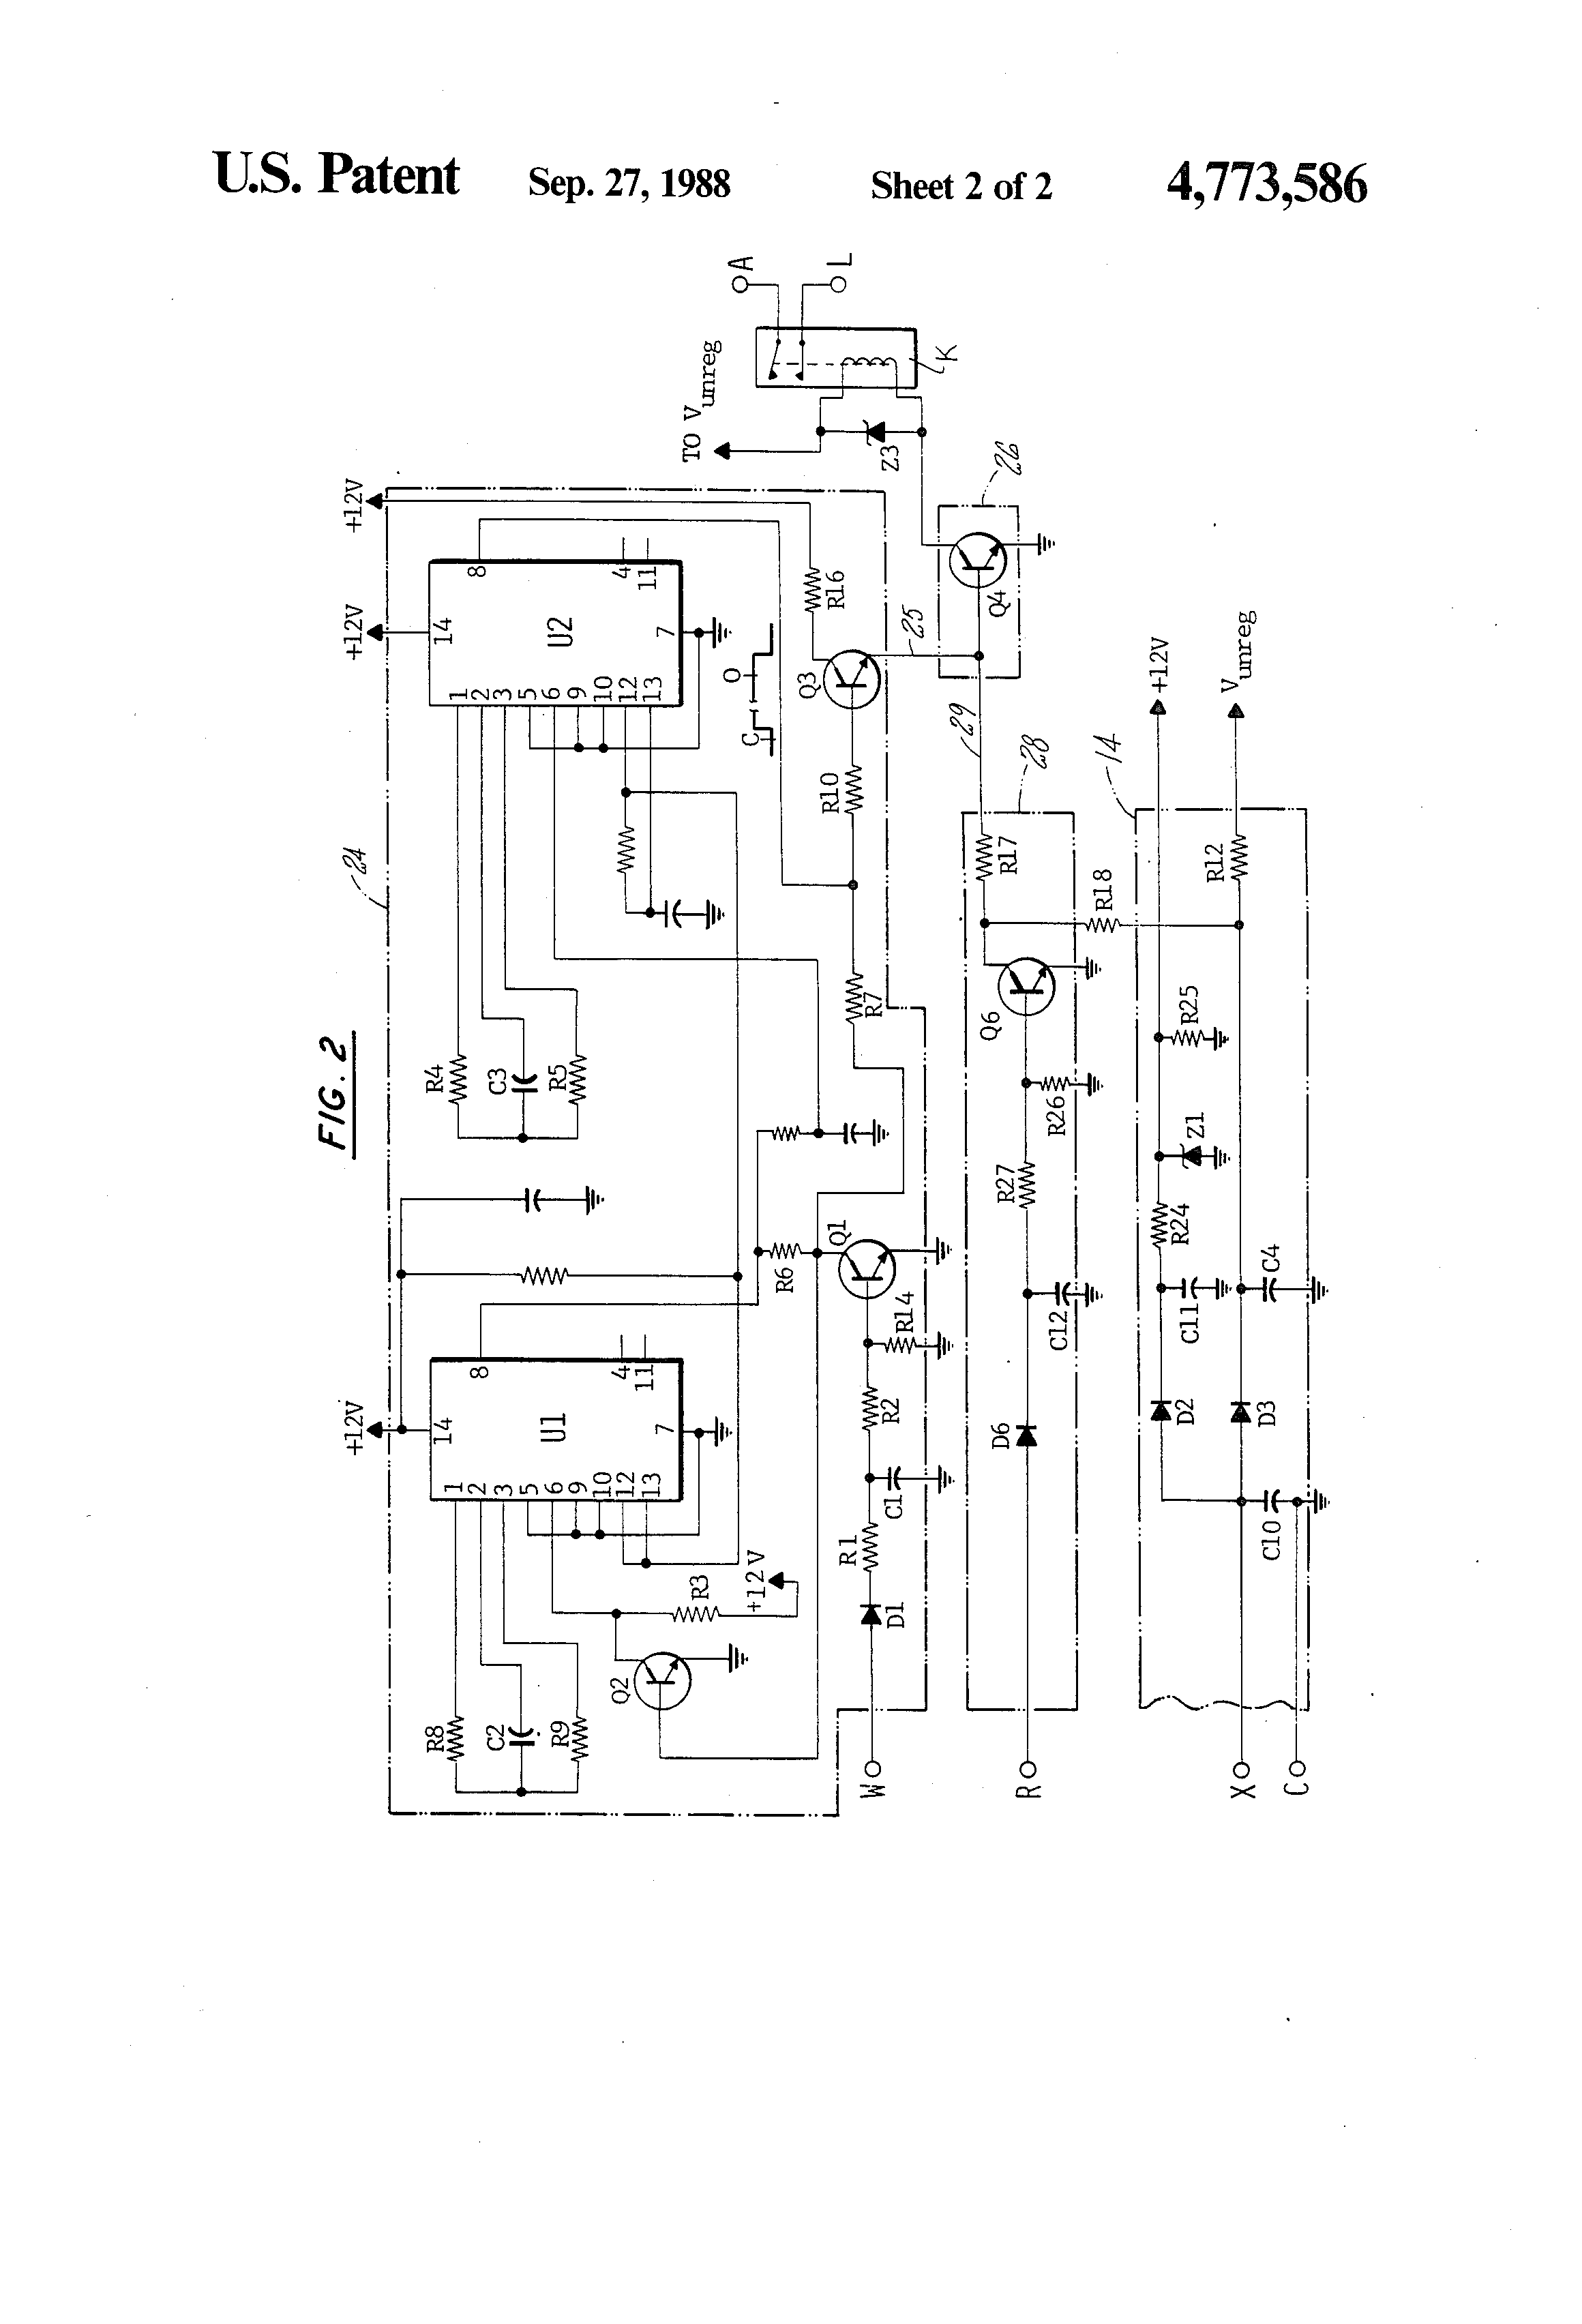 Camstat Fan Limit Control Wiring Diagram Diagrams Furnace Switch 22 Images